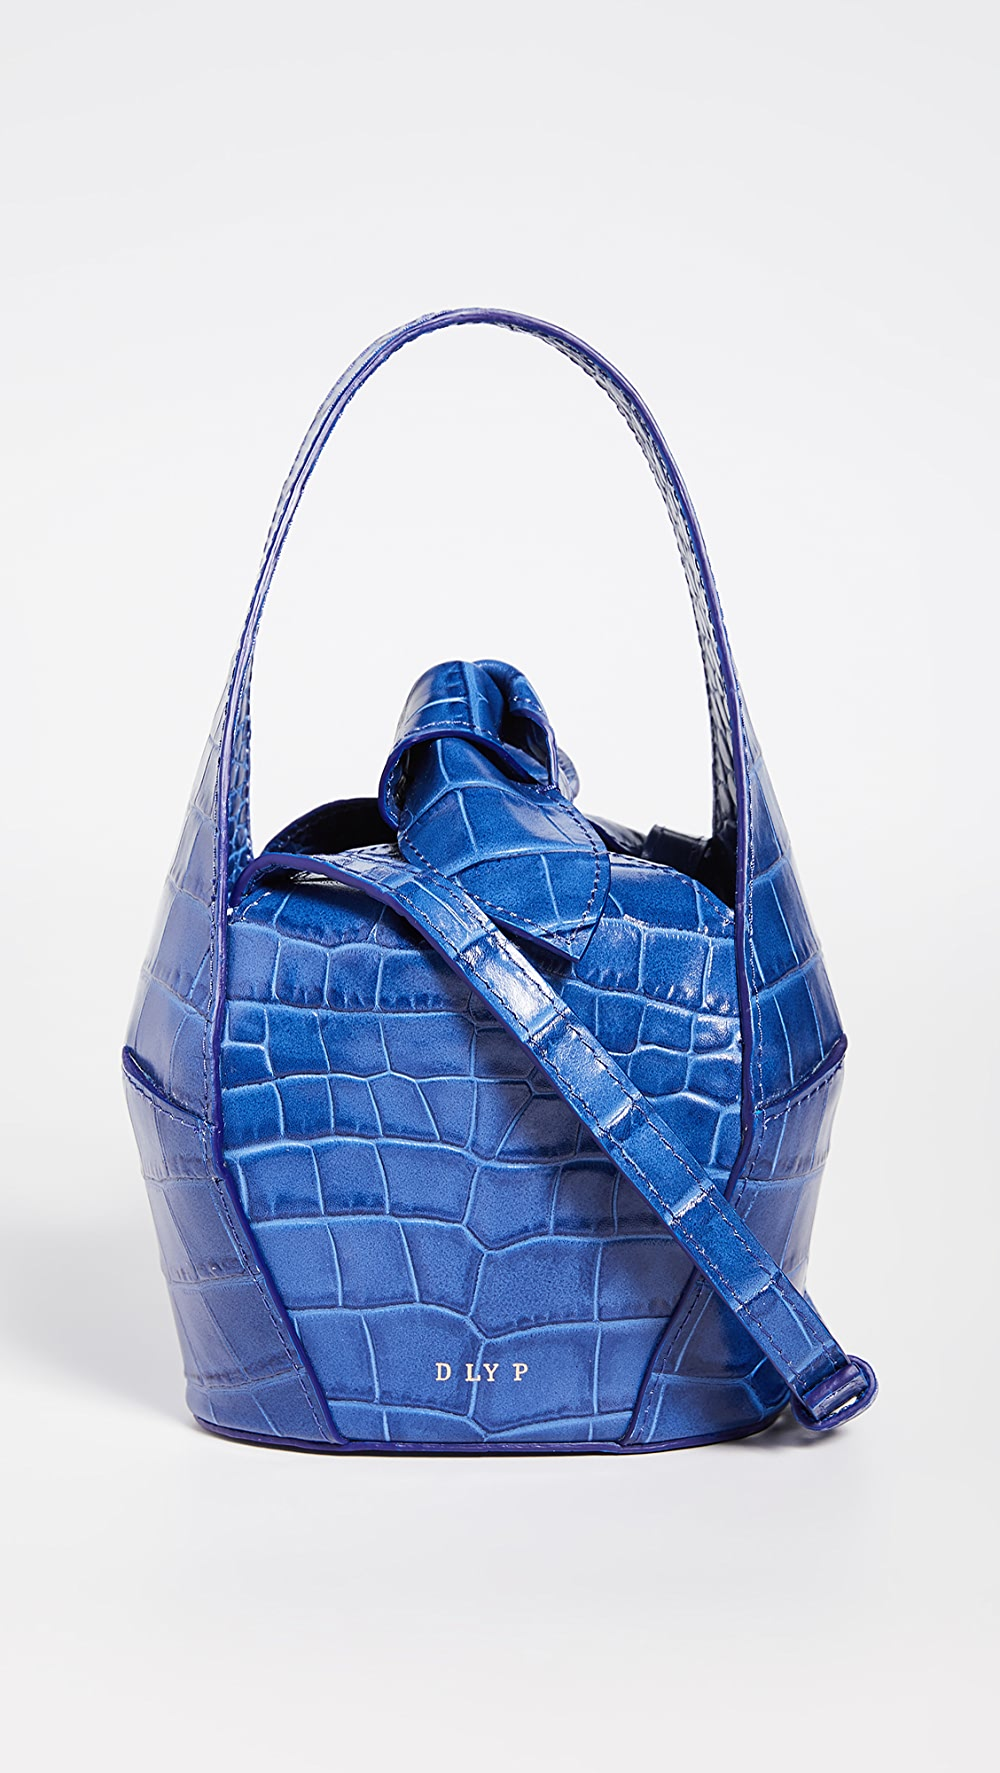 The Cheapest Price Dlyp - Top Knot Bag Agreeable Sweetness